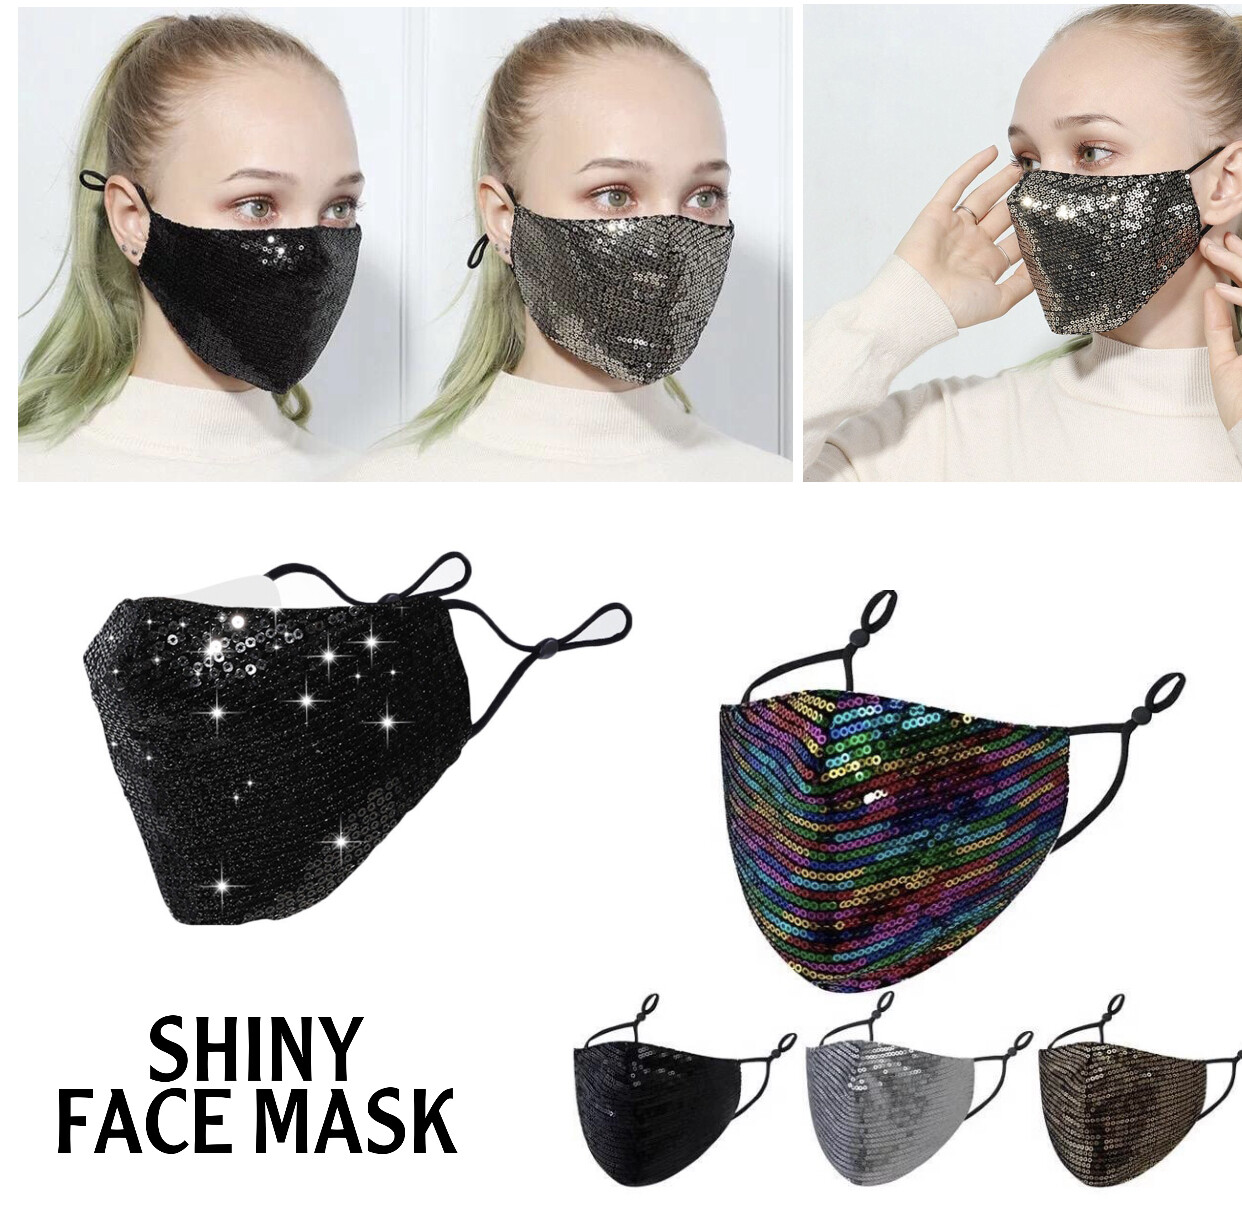 Shiny Mask